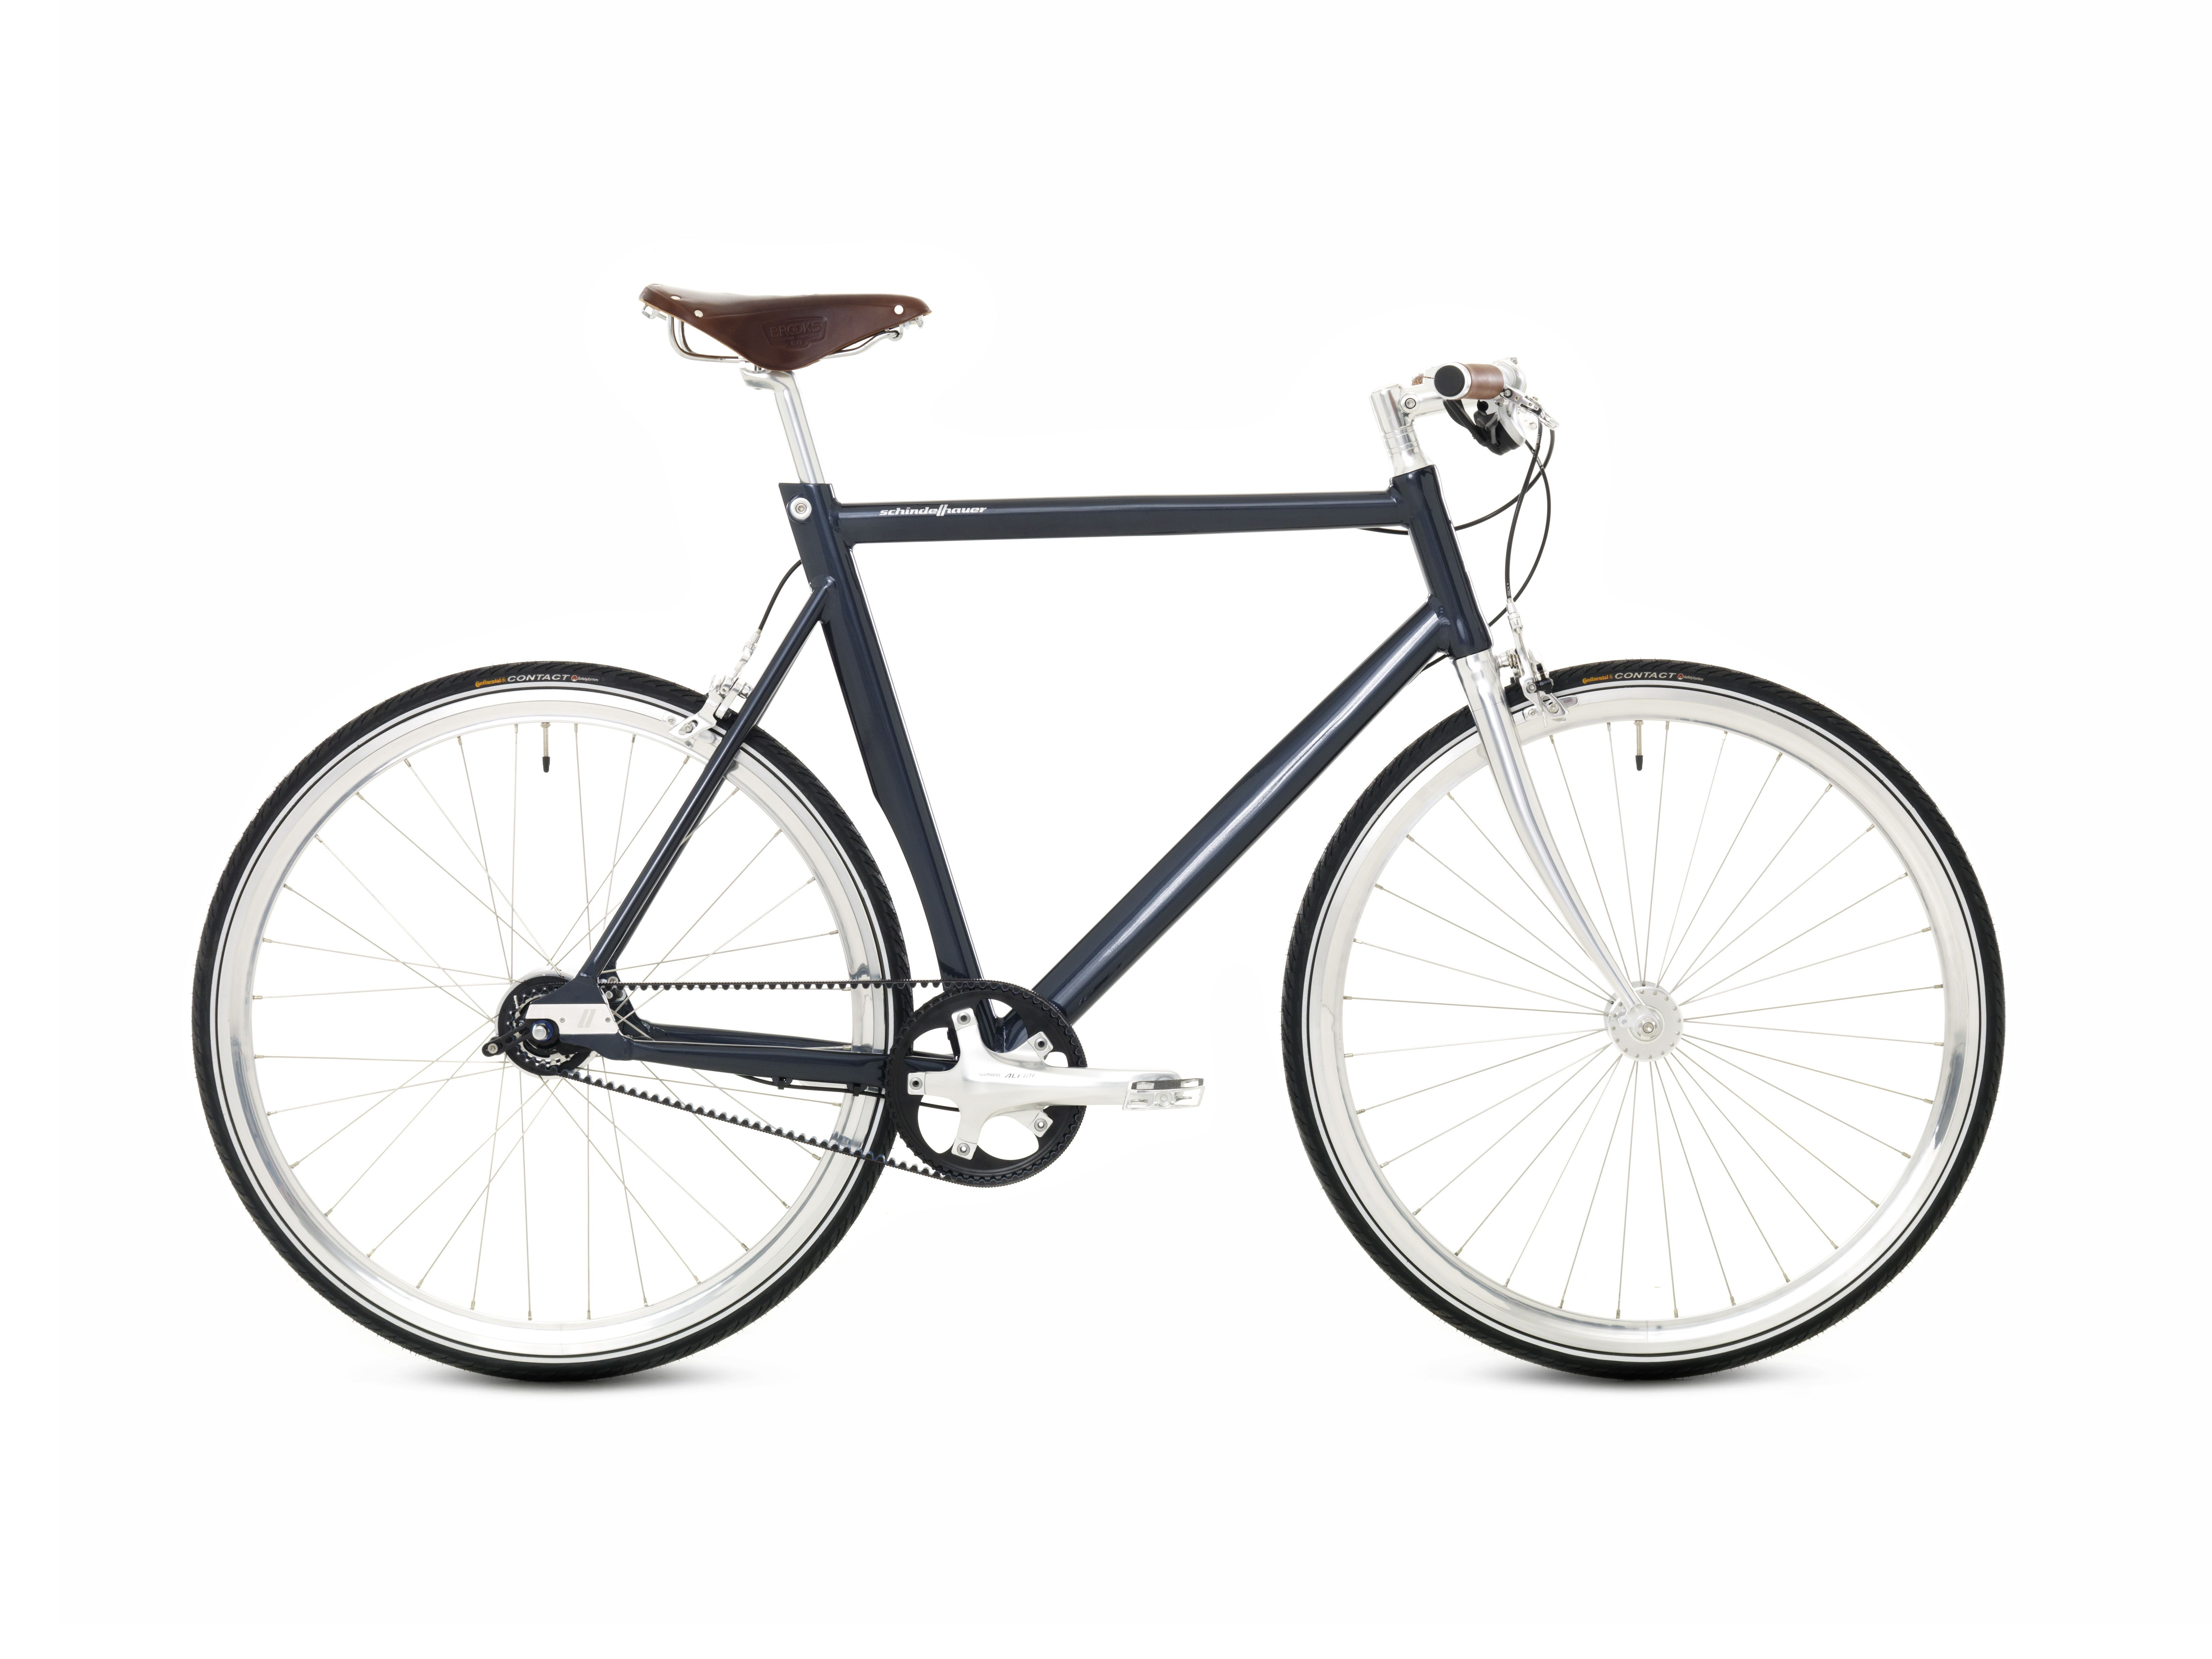 Schindelhauer Ludwig midnight blue. Ludwig is our light touring bike ...